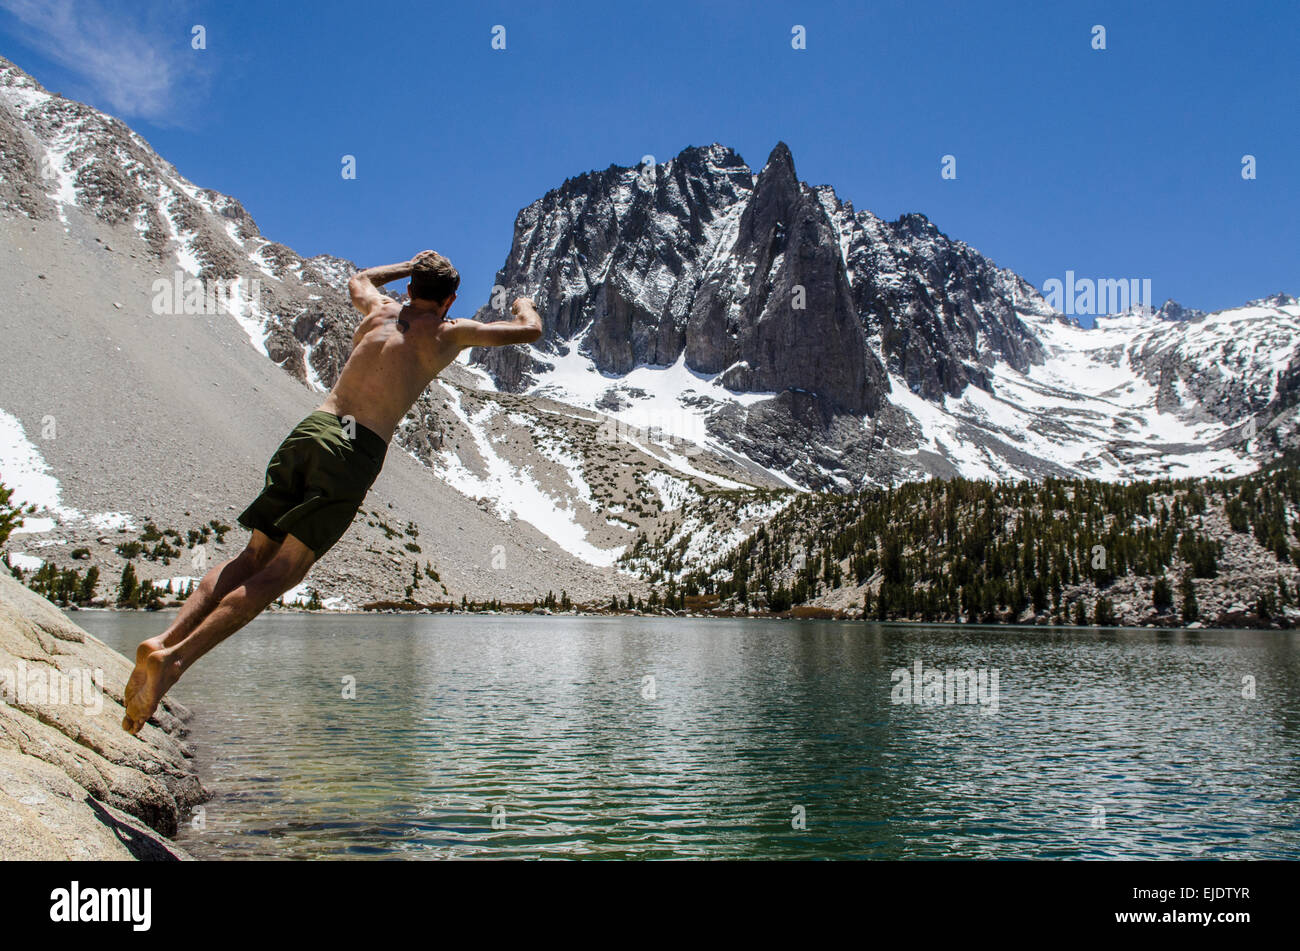 Cannonball time, a young man jumps in a desolation lake in the John Muir Wilderness, Eastern Sierras, California. - Stock Image